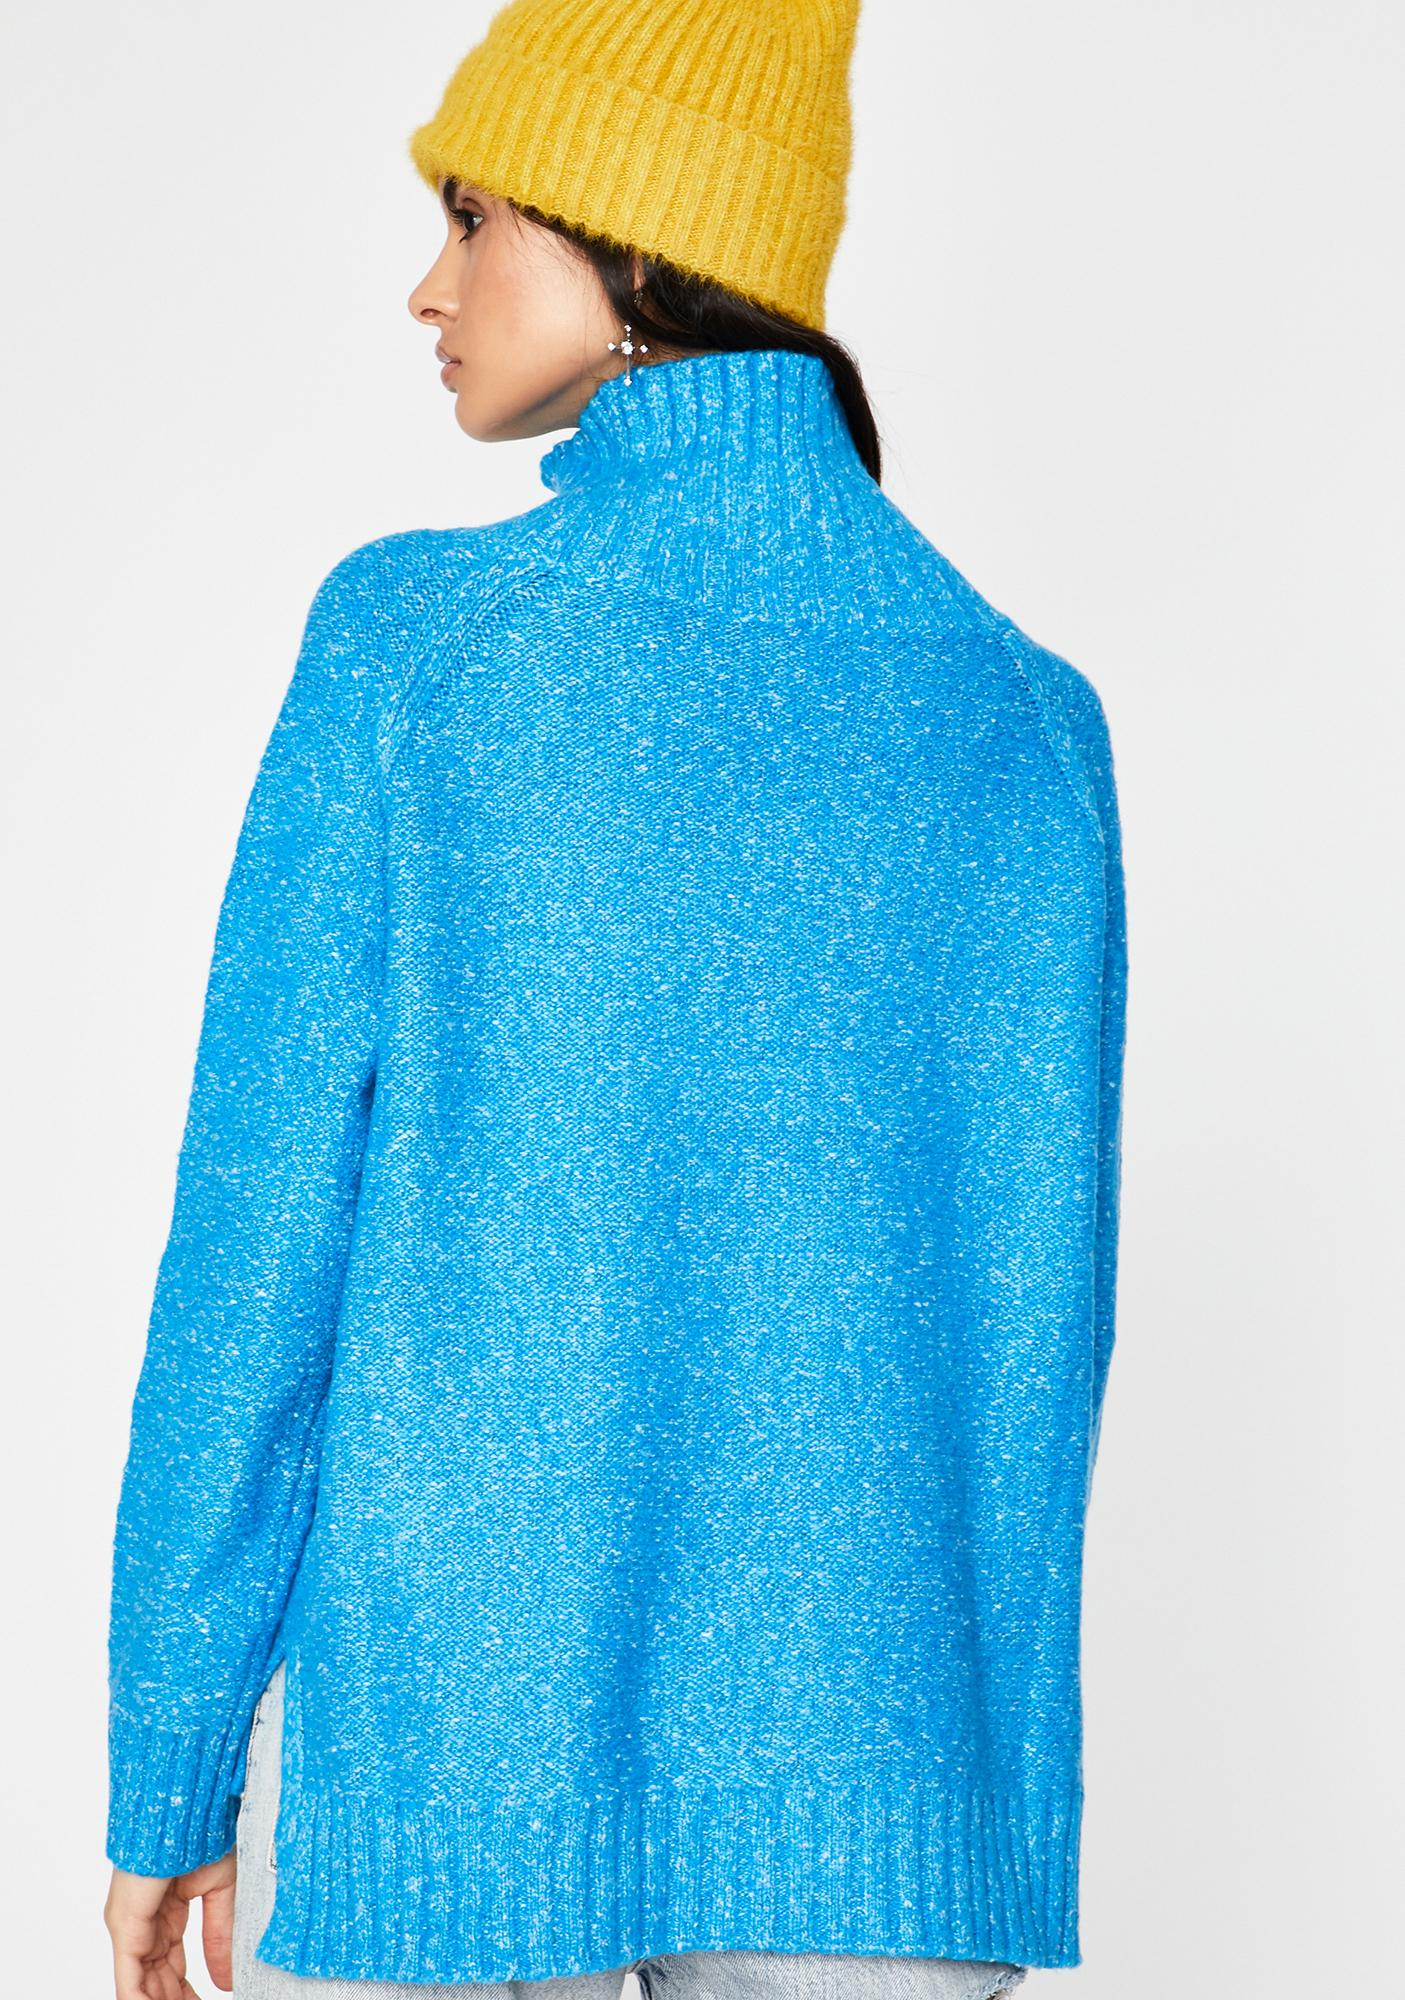 Bright Vibes Turtleneck Sweater